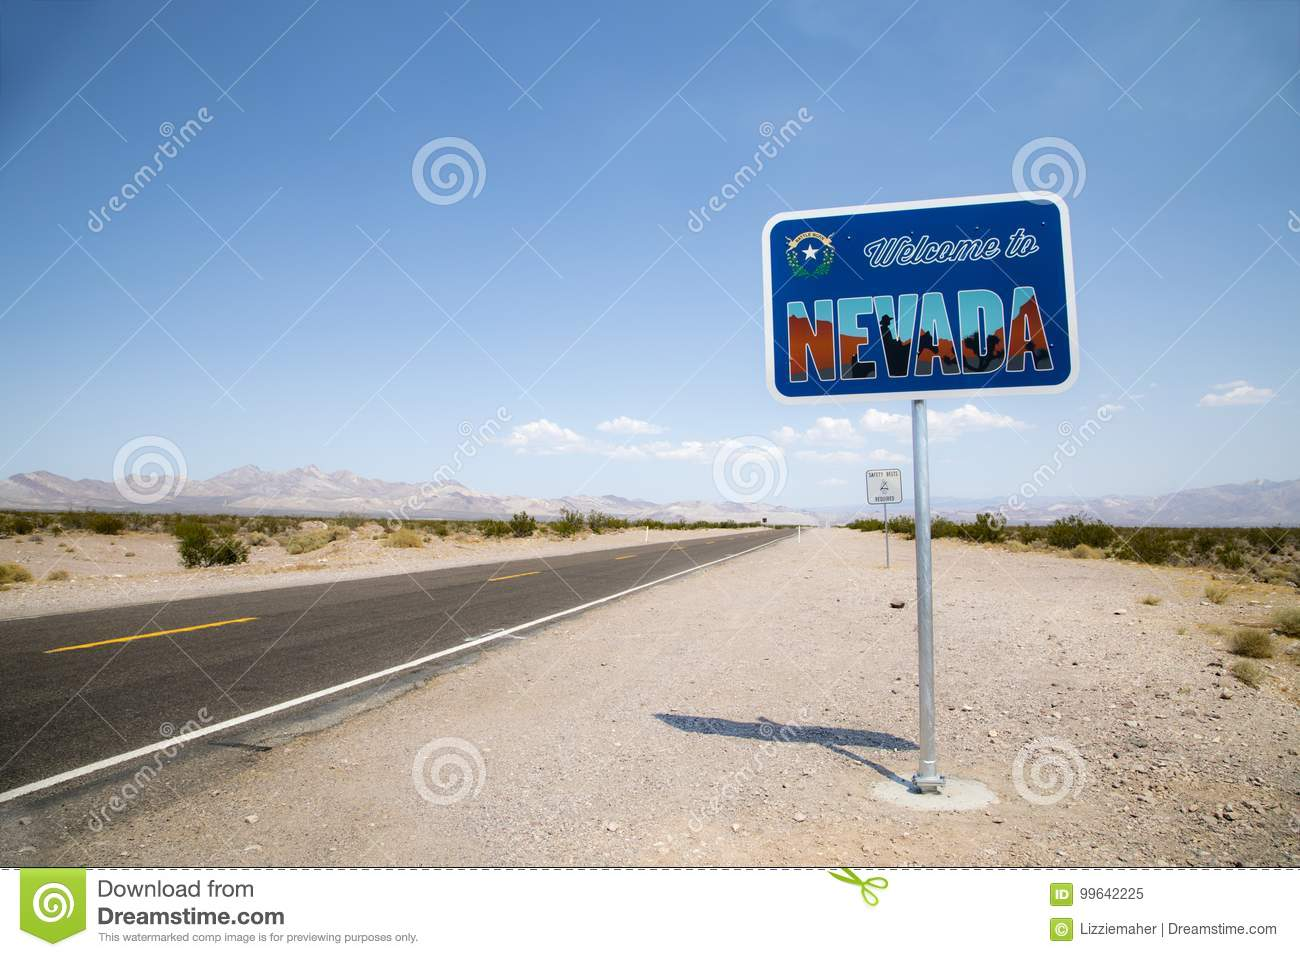 Welcome to Nevada sign stock image. Image of nevada